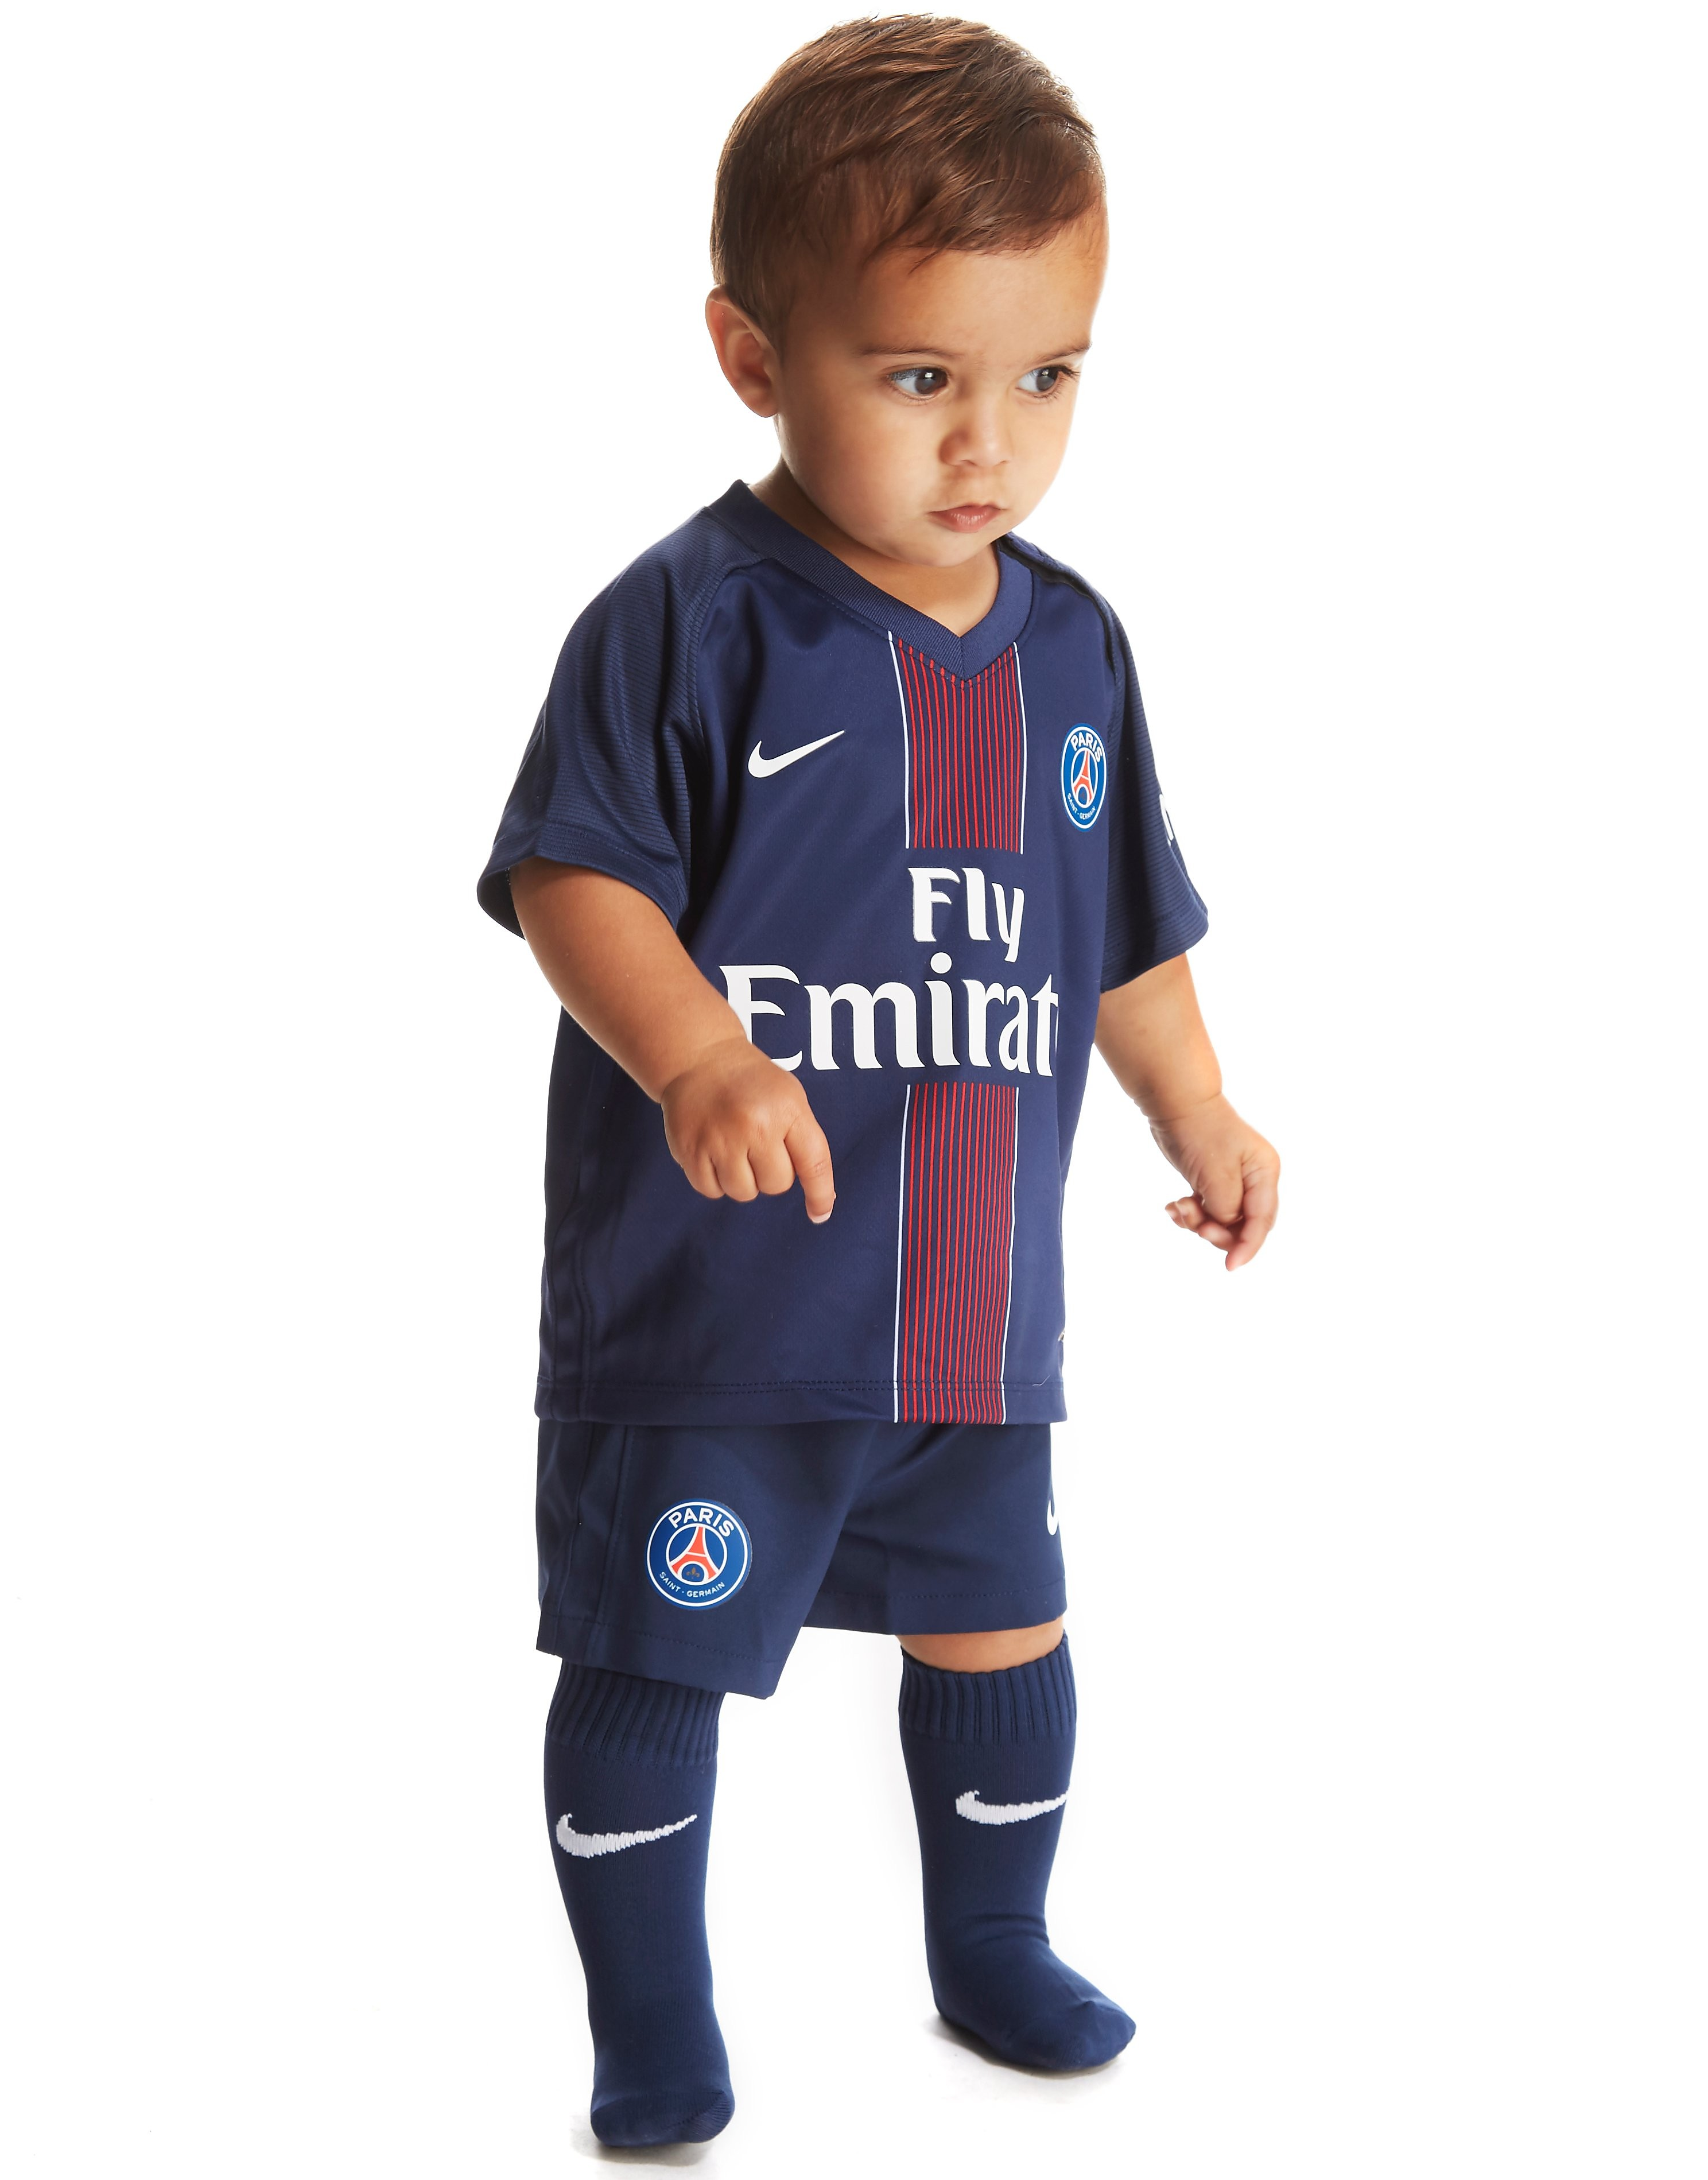 Nike Paris Saint Germain 2016/17 Home Kit Infant